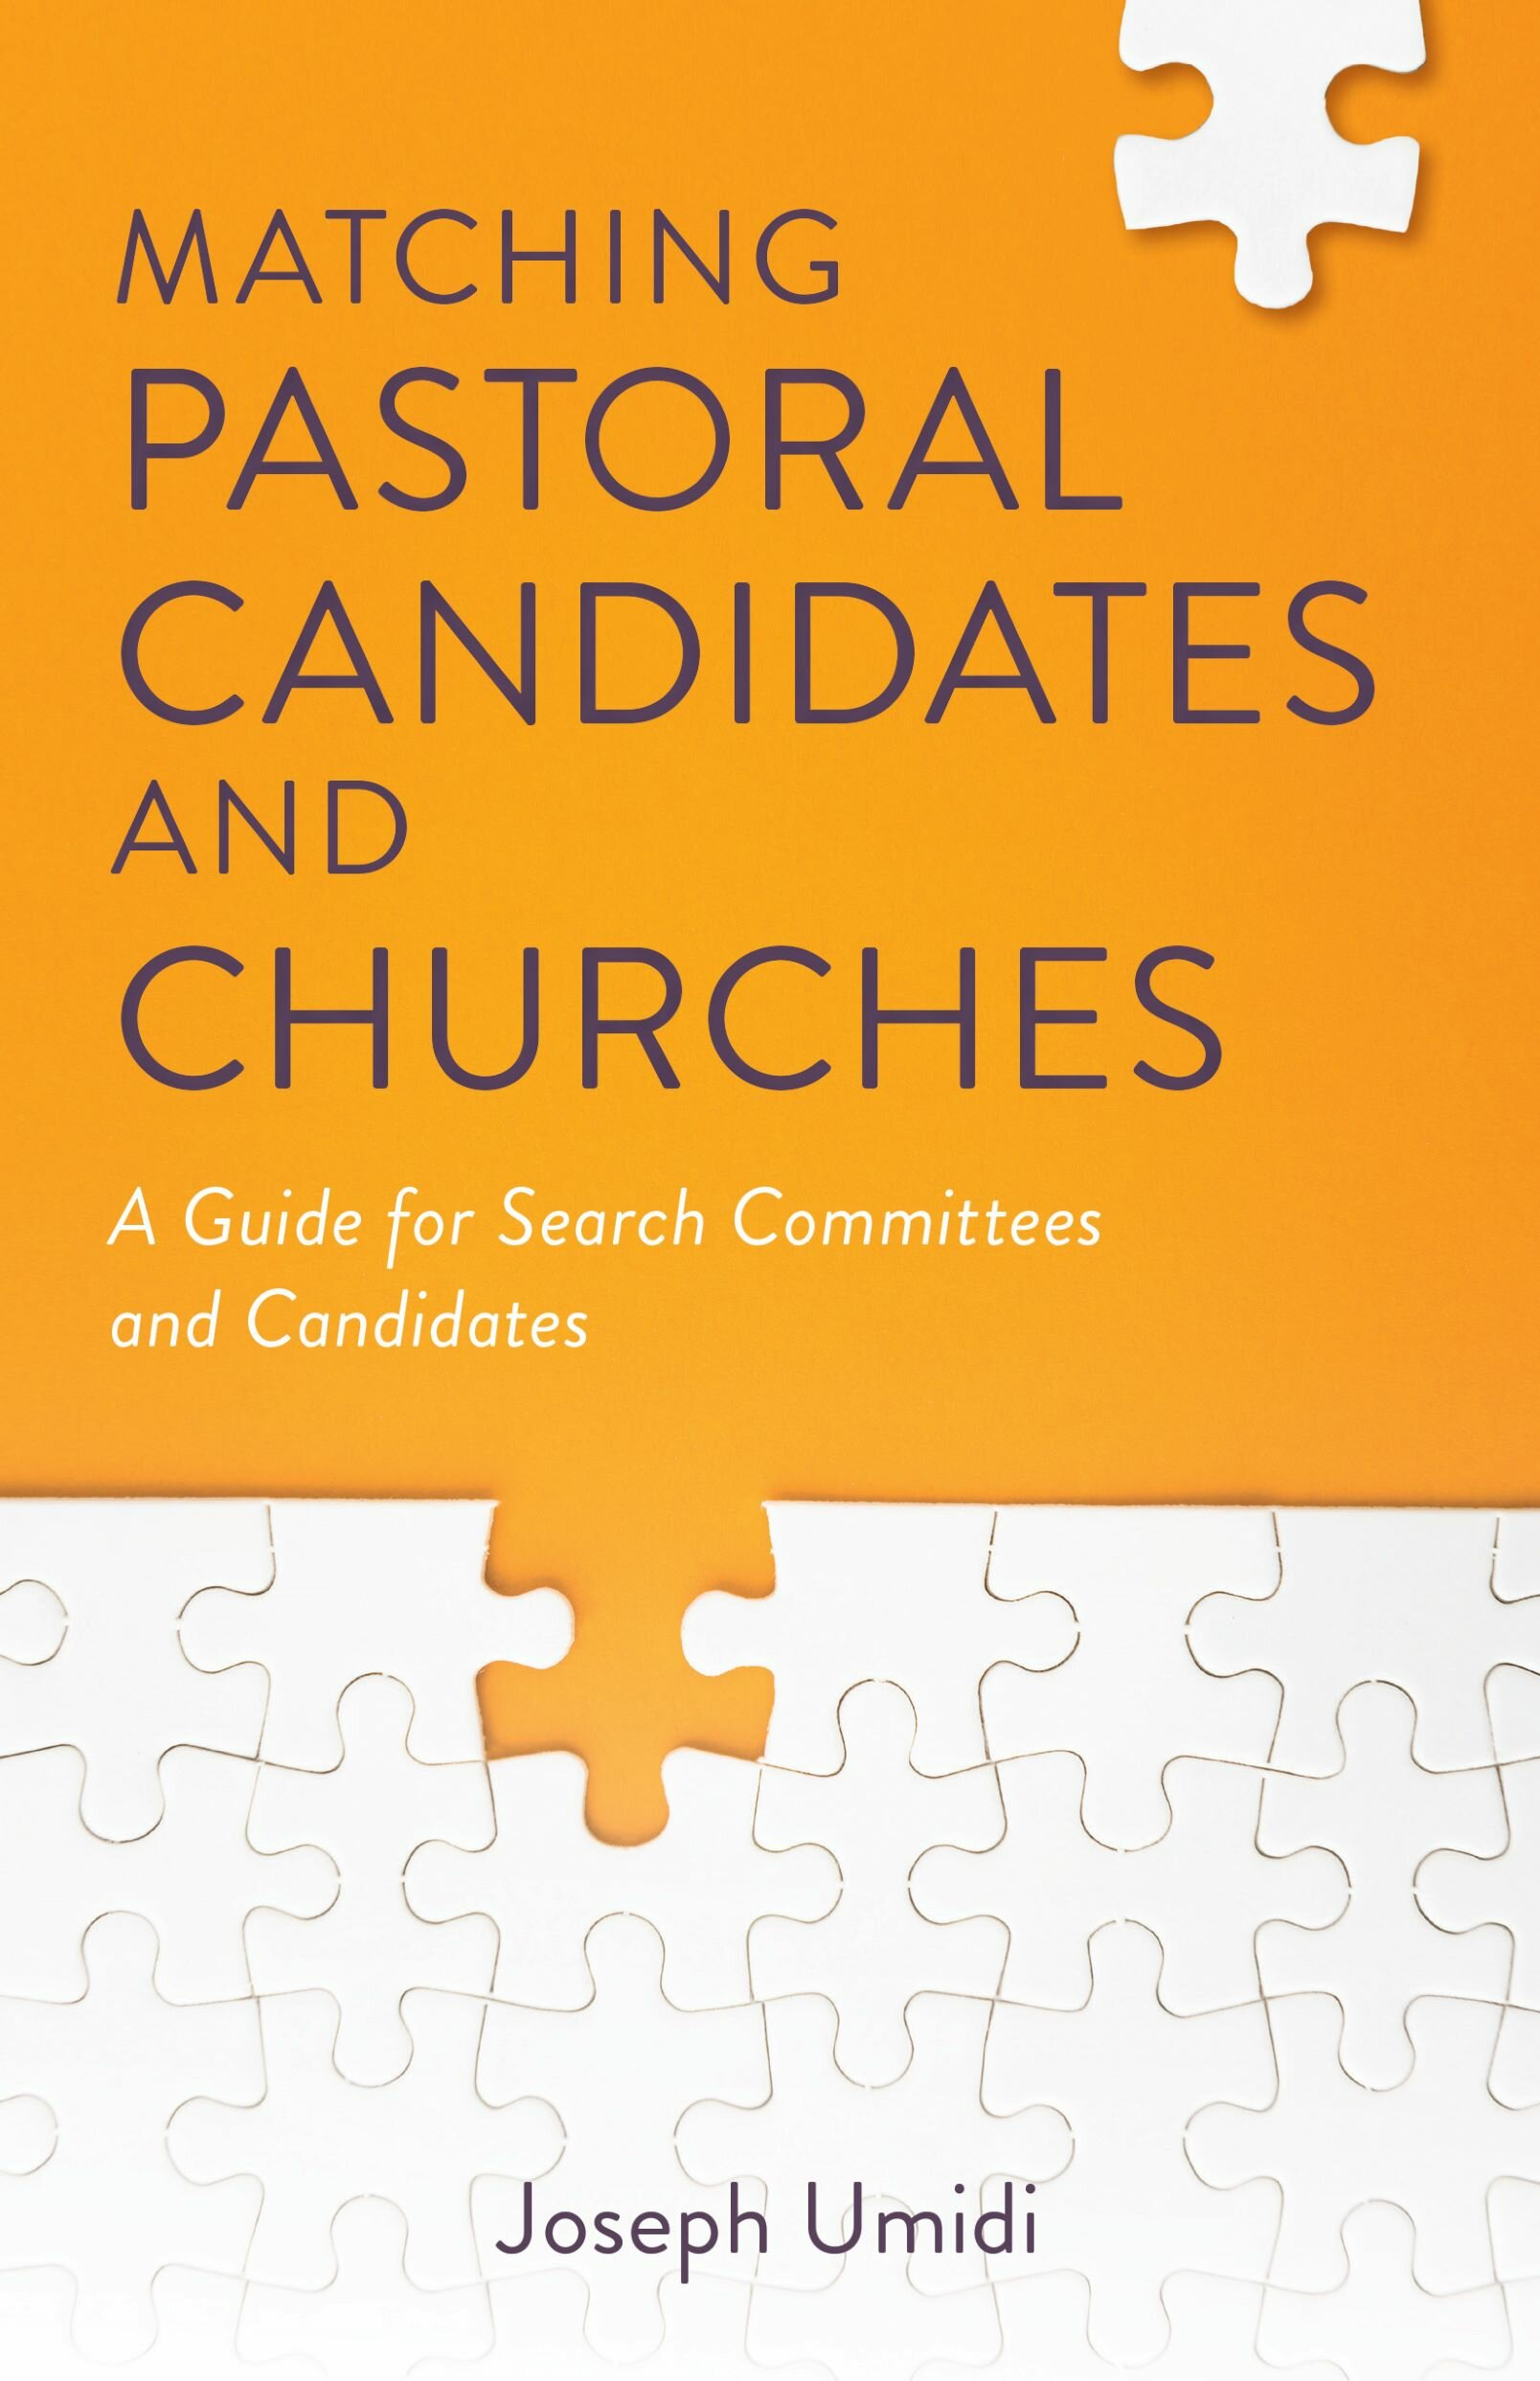 Matching Pastoral Candidates and Churches: A Guide for Search Committees and Candidates